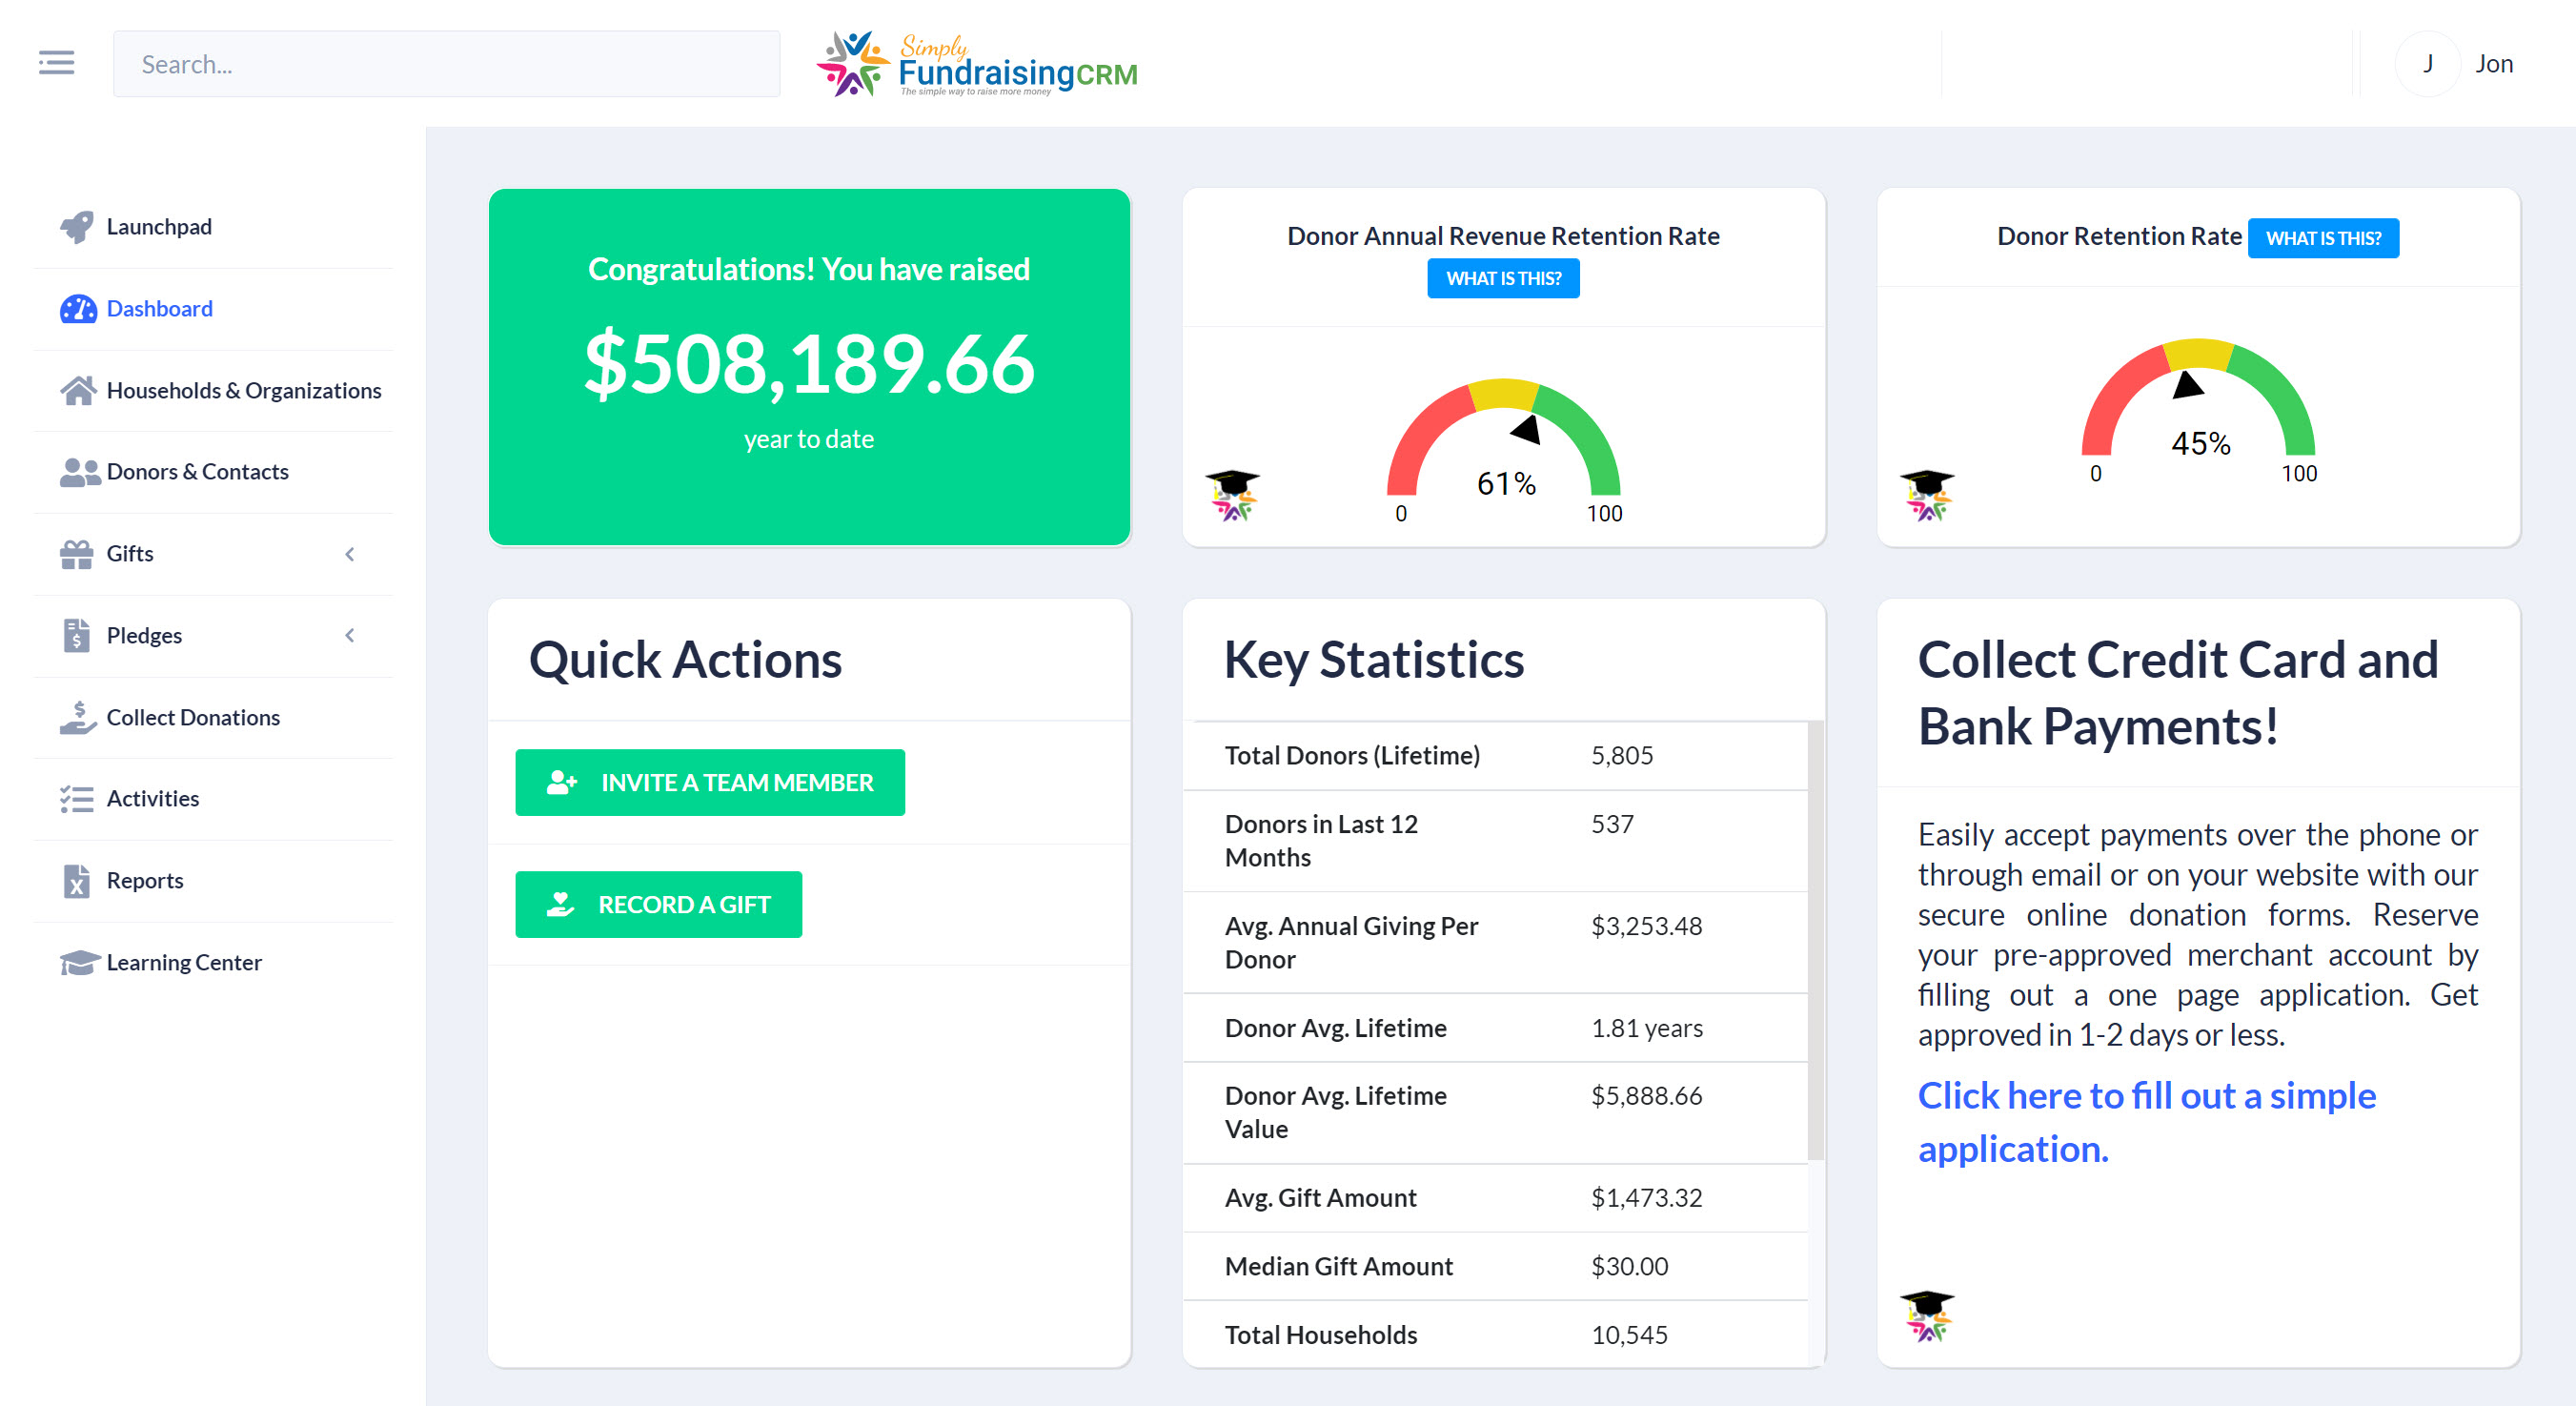 The sharable Dashboard gives insight into everything you need to know for day-to-day fundraising as well as upcoming board meetings.